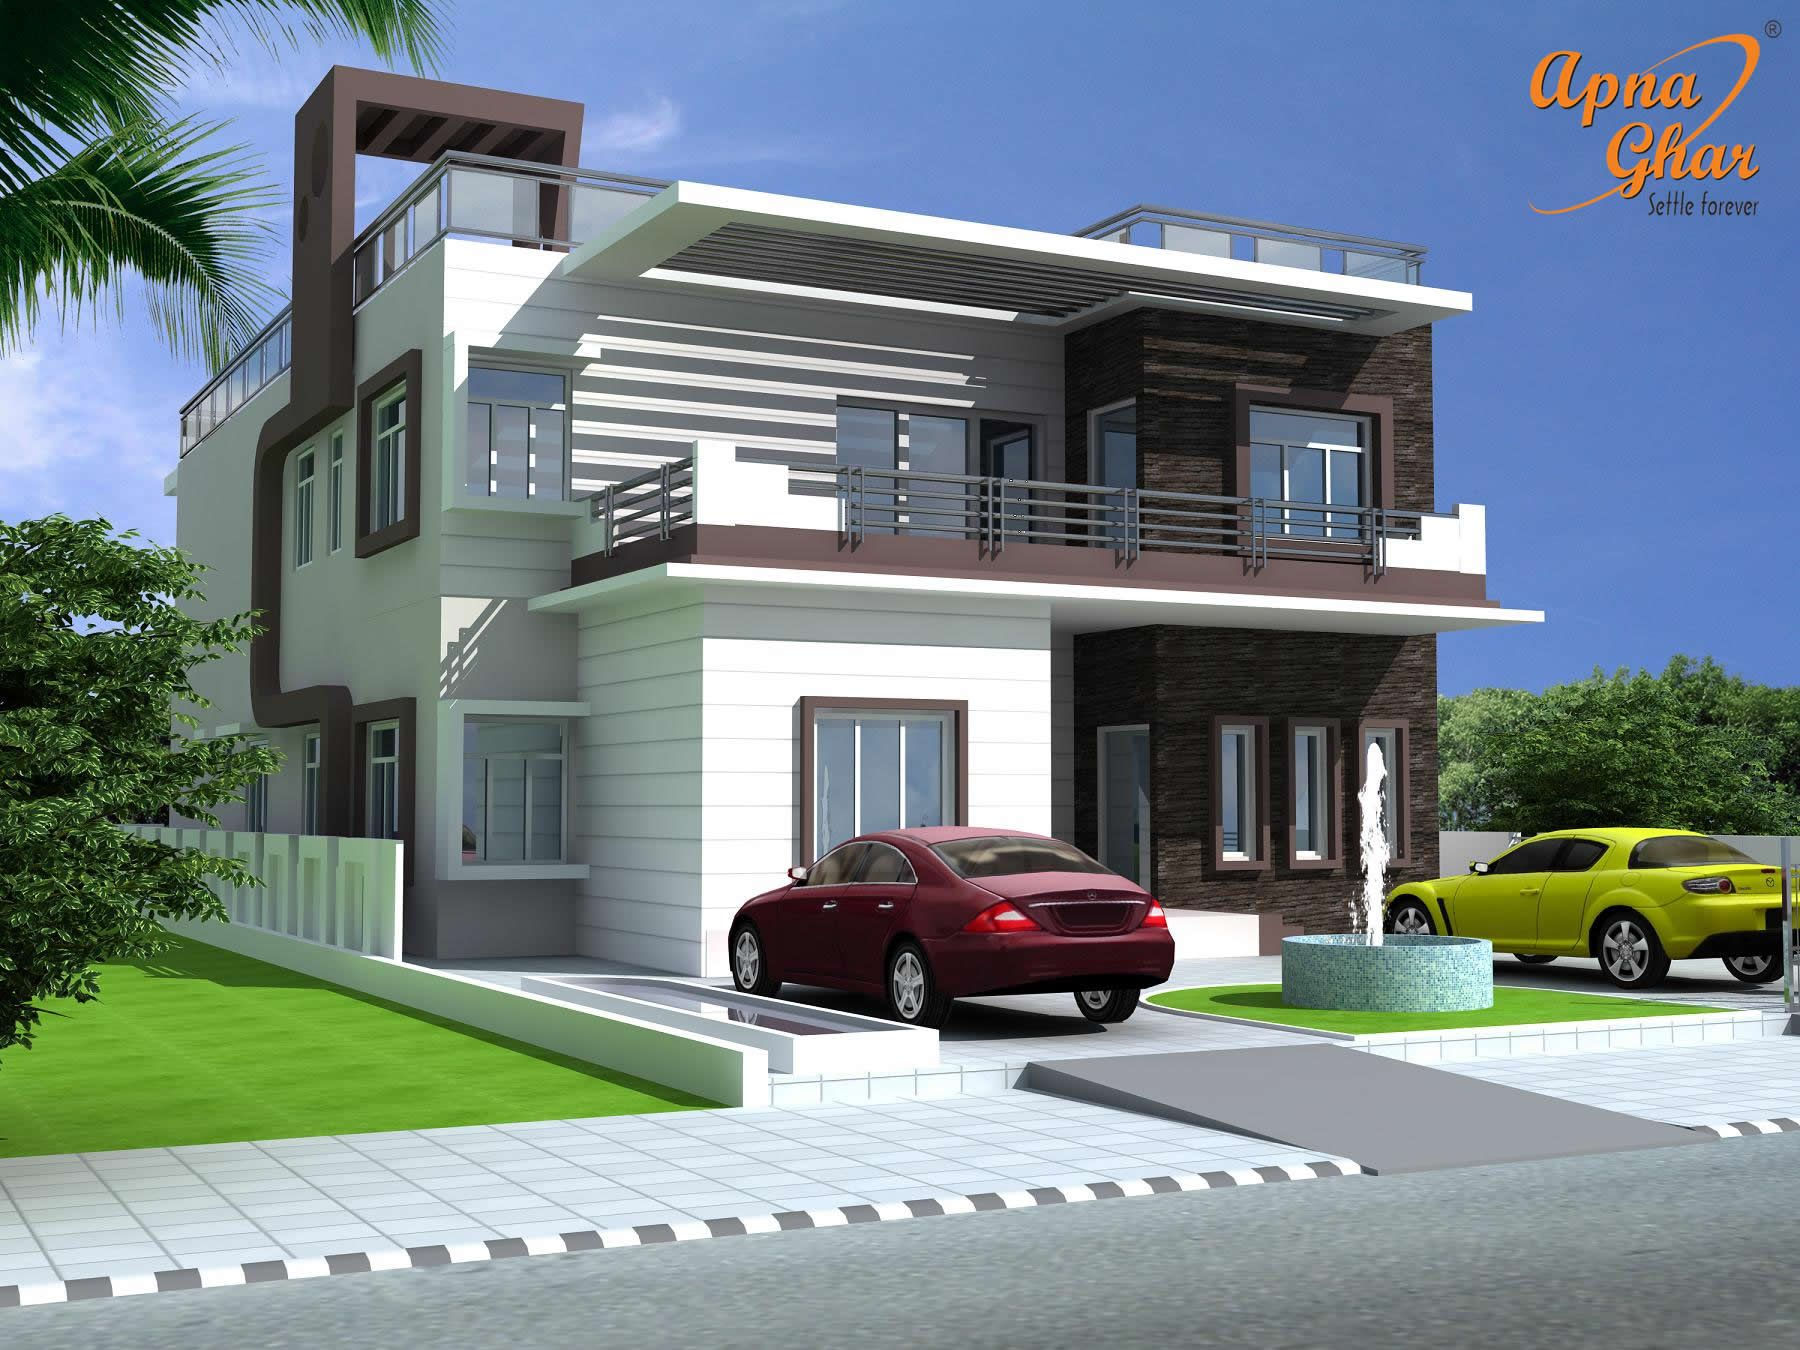 6 bedrooms duplex house design in 390m2 13m x 30m click for Duplex images india